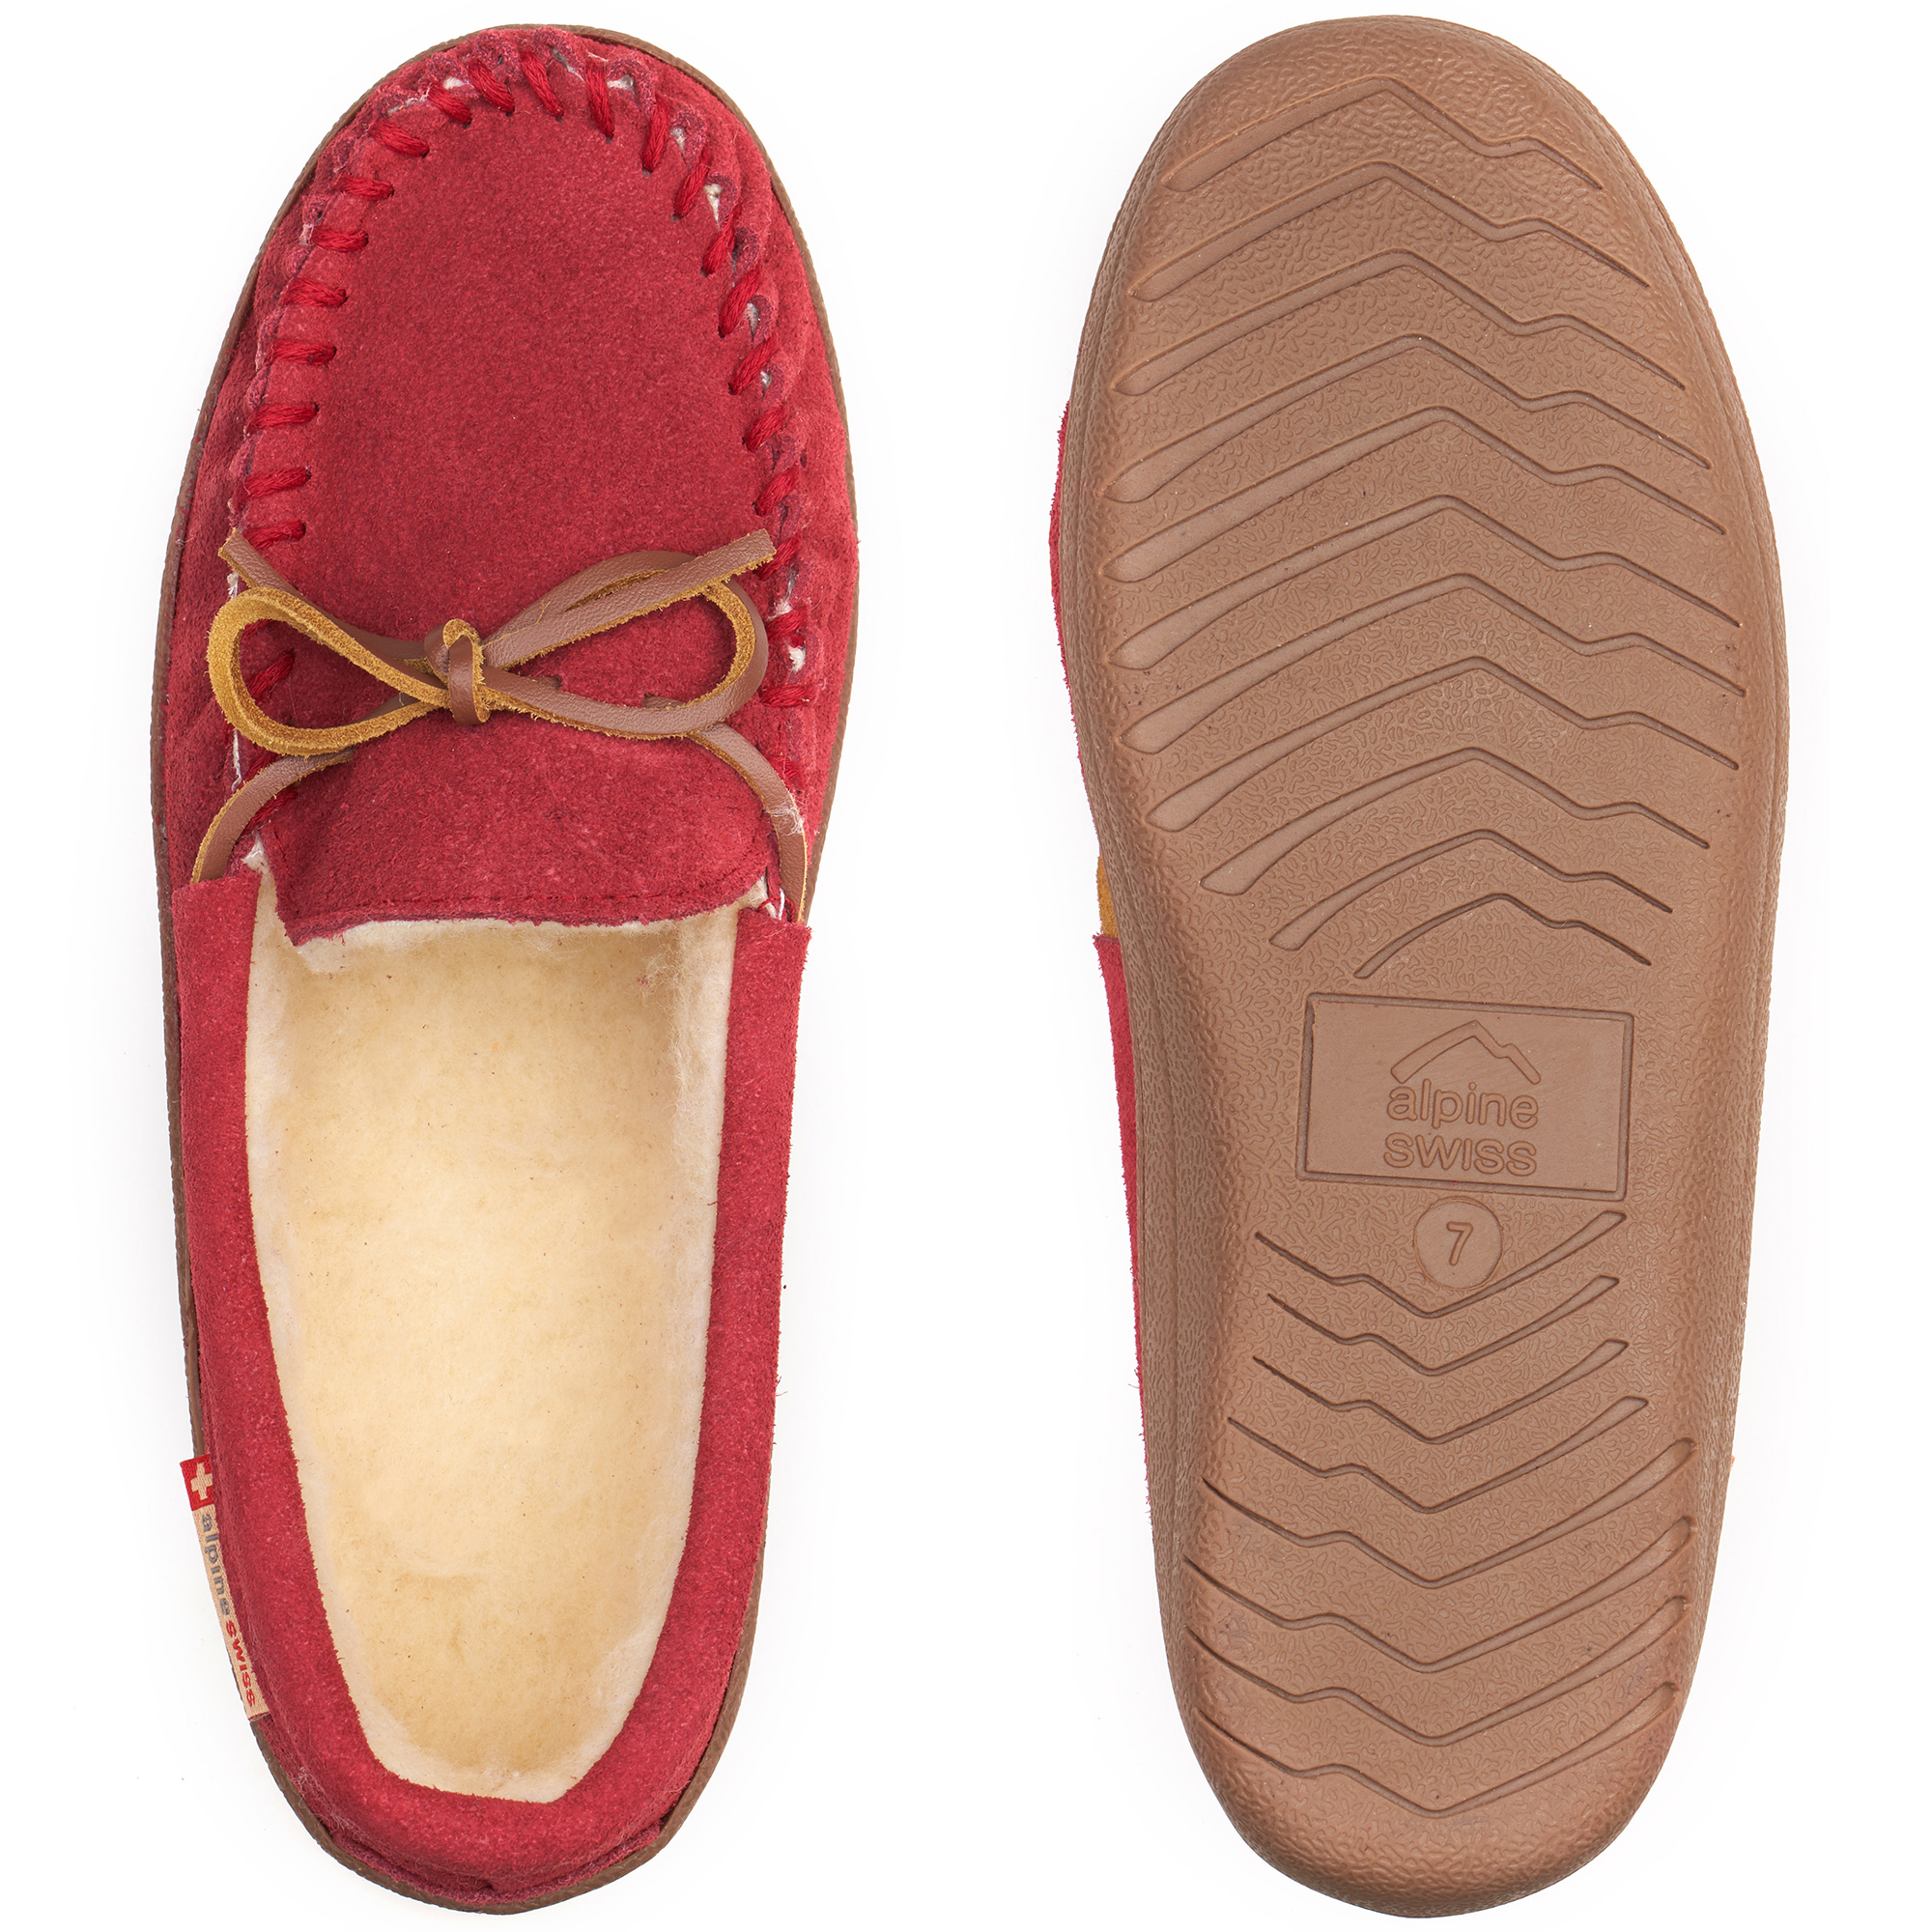 Alpine-Swiss-Sabine-Womens-Suede-Shearling-Moccasin-Slippers-House-Shoes-Slip-On miniature 46